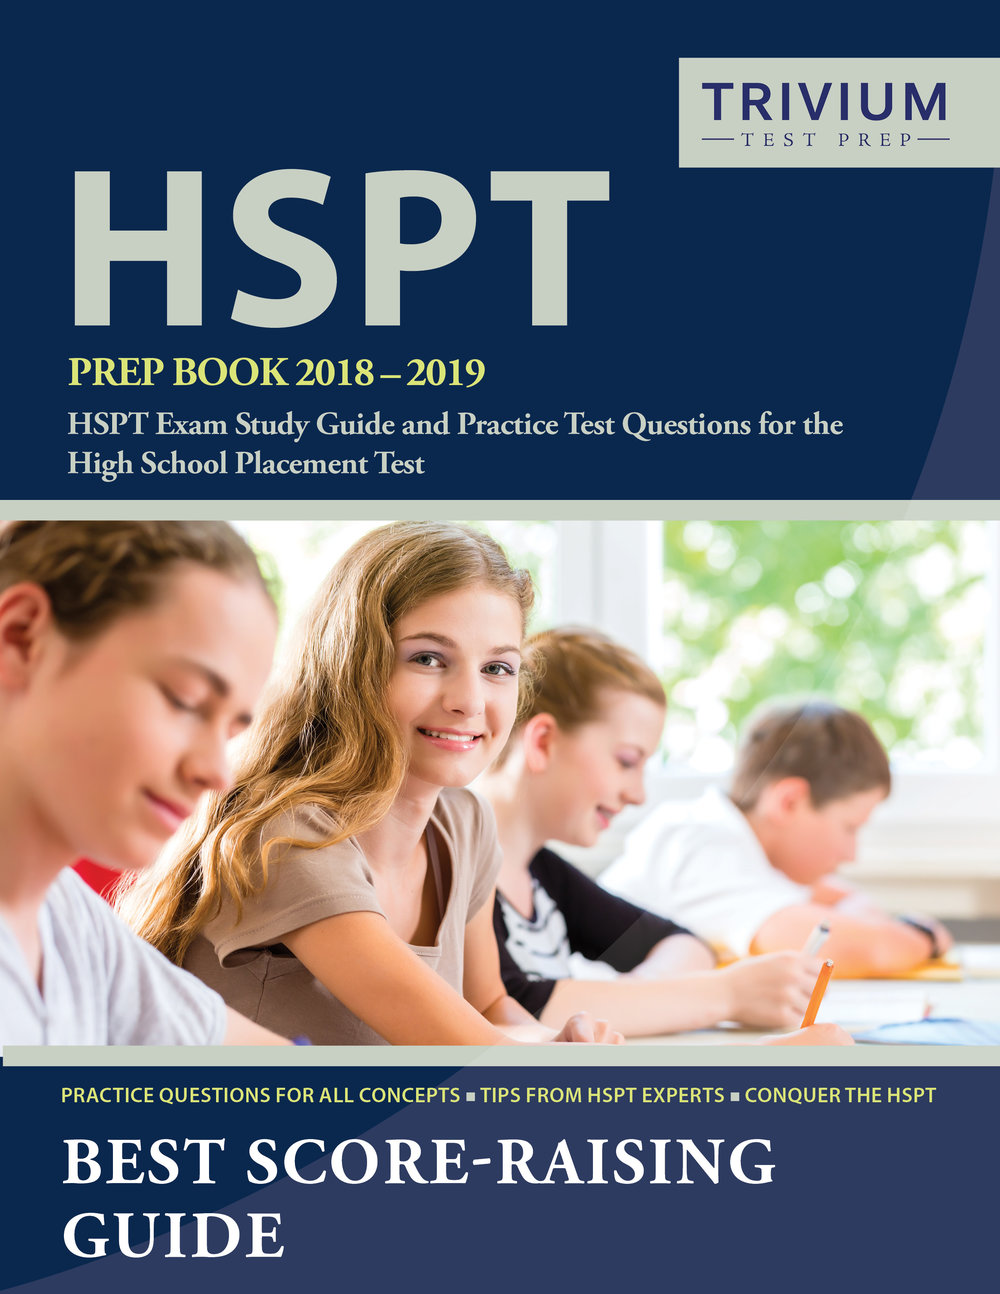 HSPT_cover_website.jpg